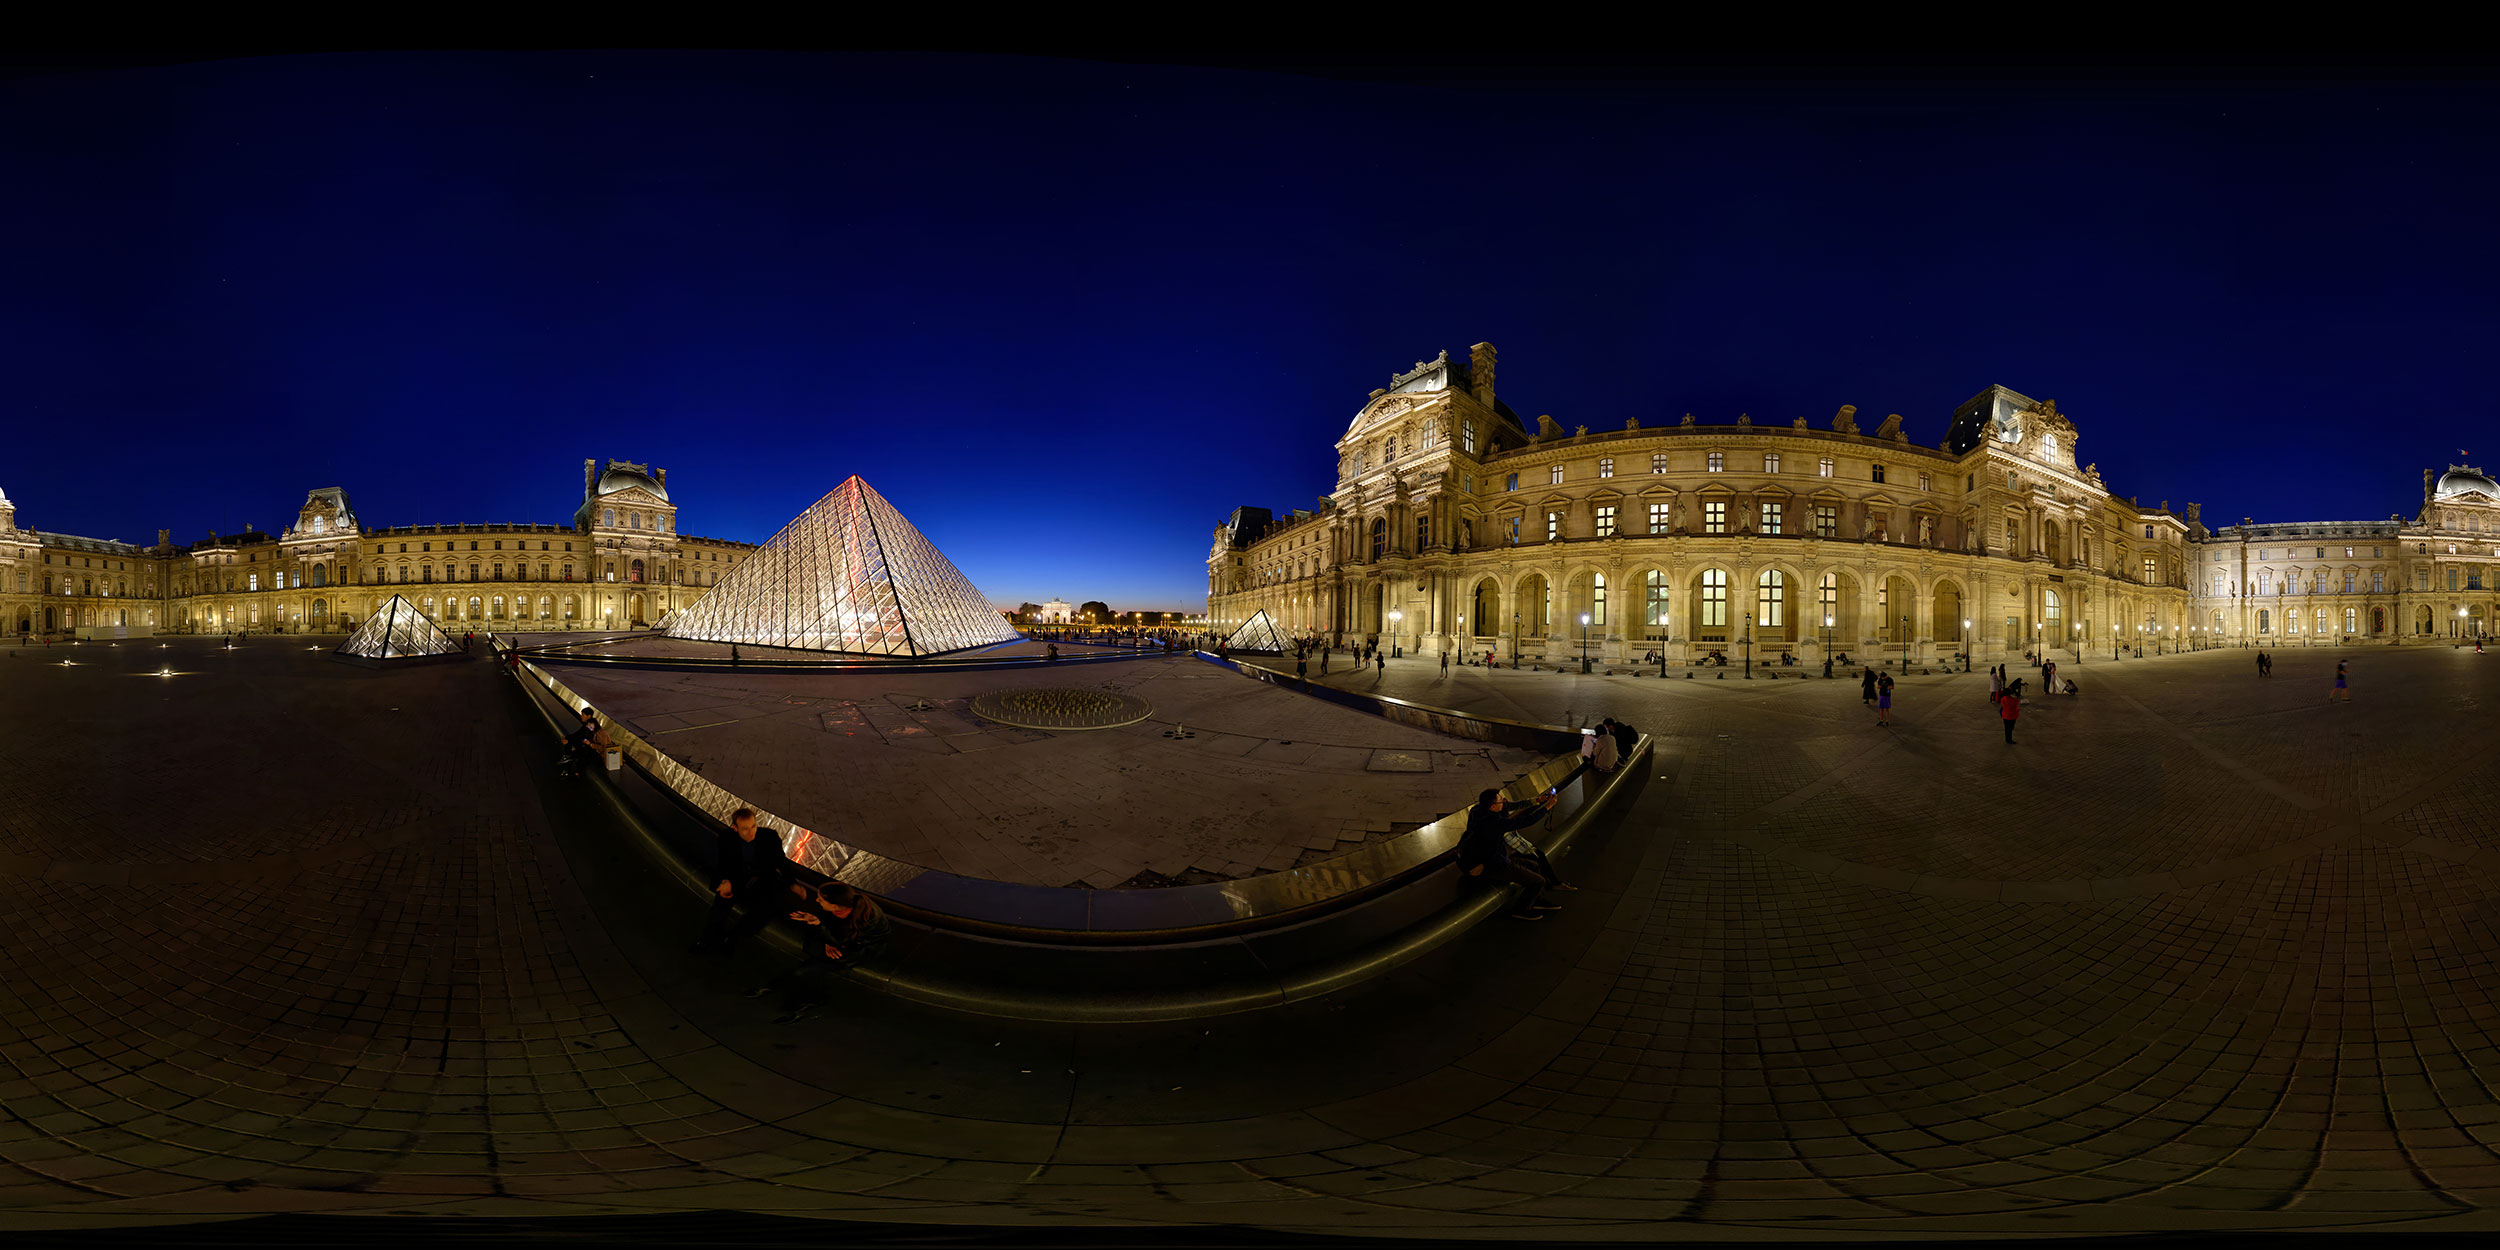 Photo Panoramique – Visite Virtuelle